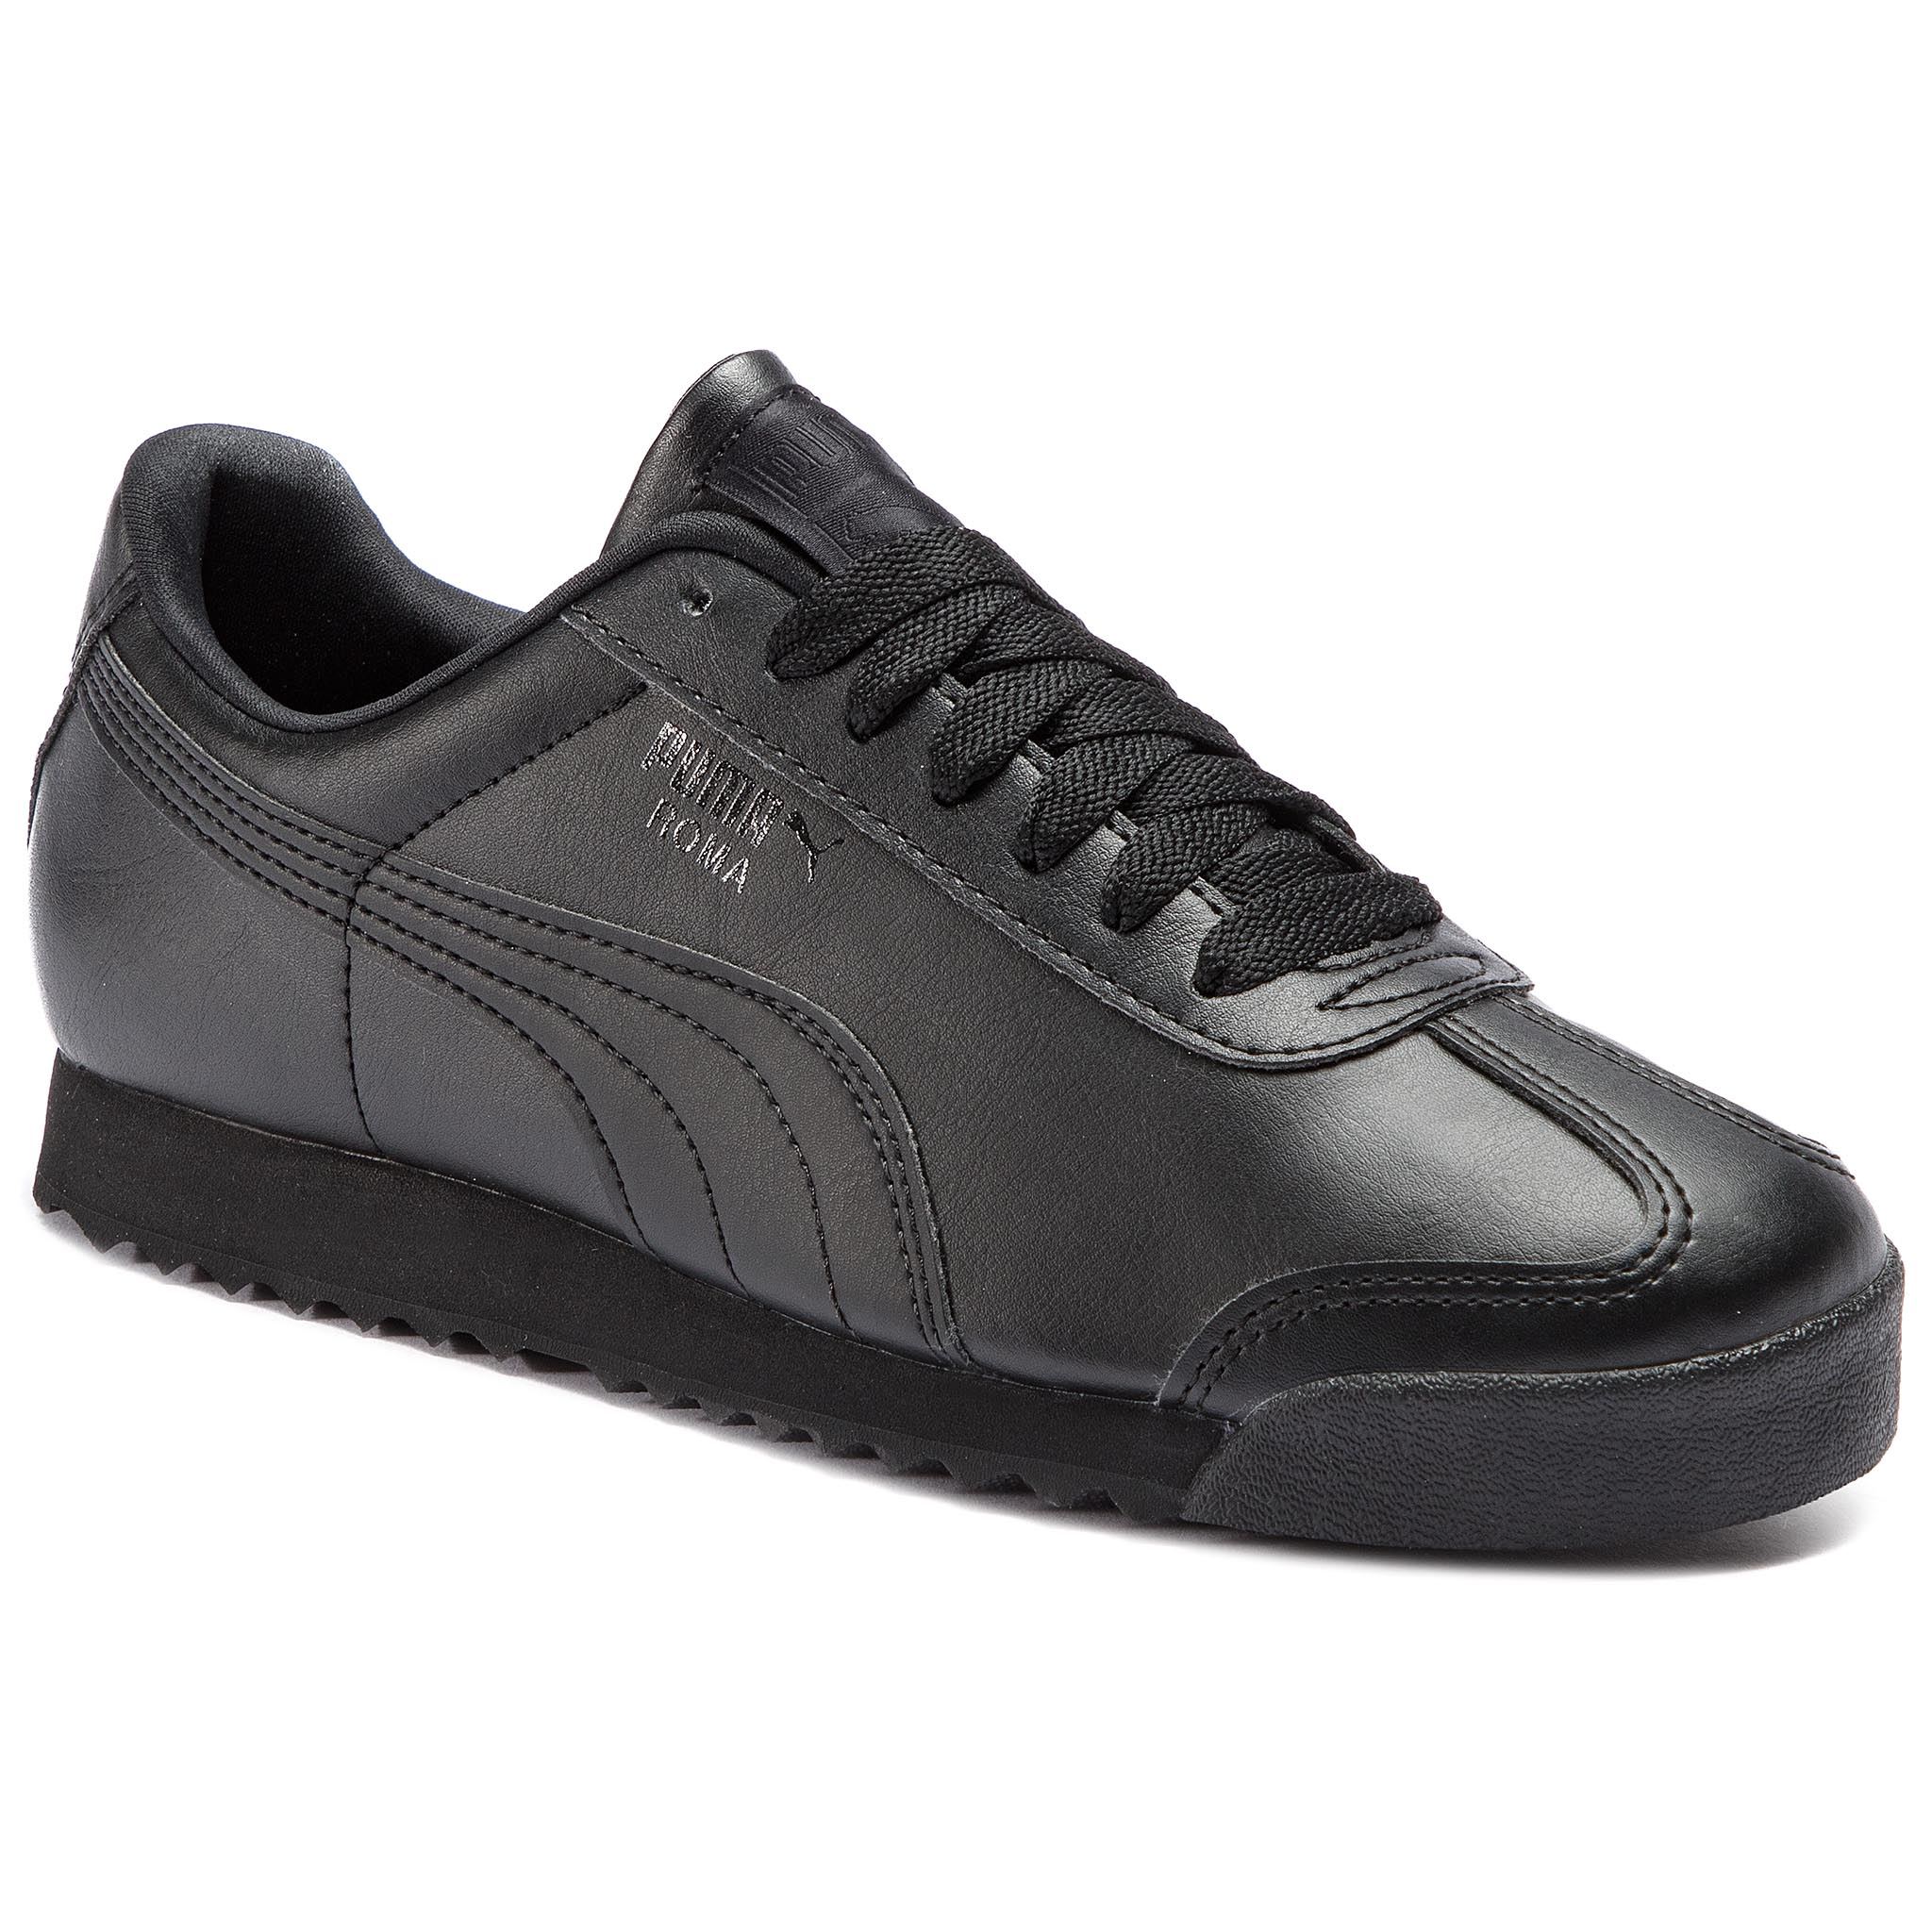 Sneakers PUMA - Roma Basic 353572 17 Black/Black